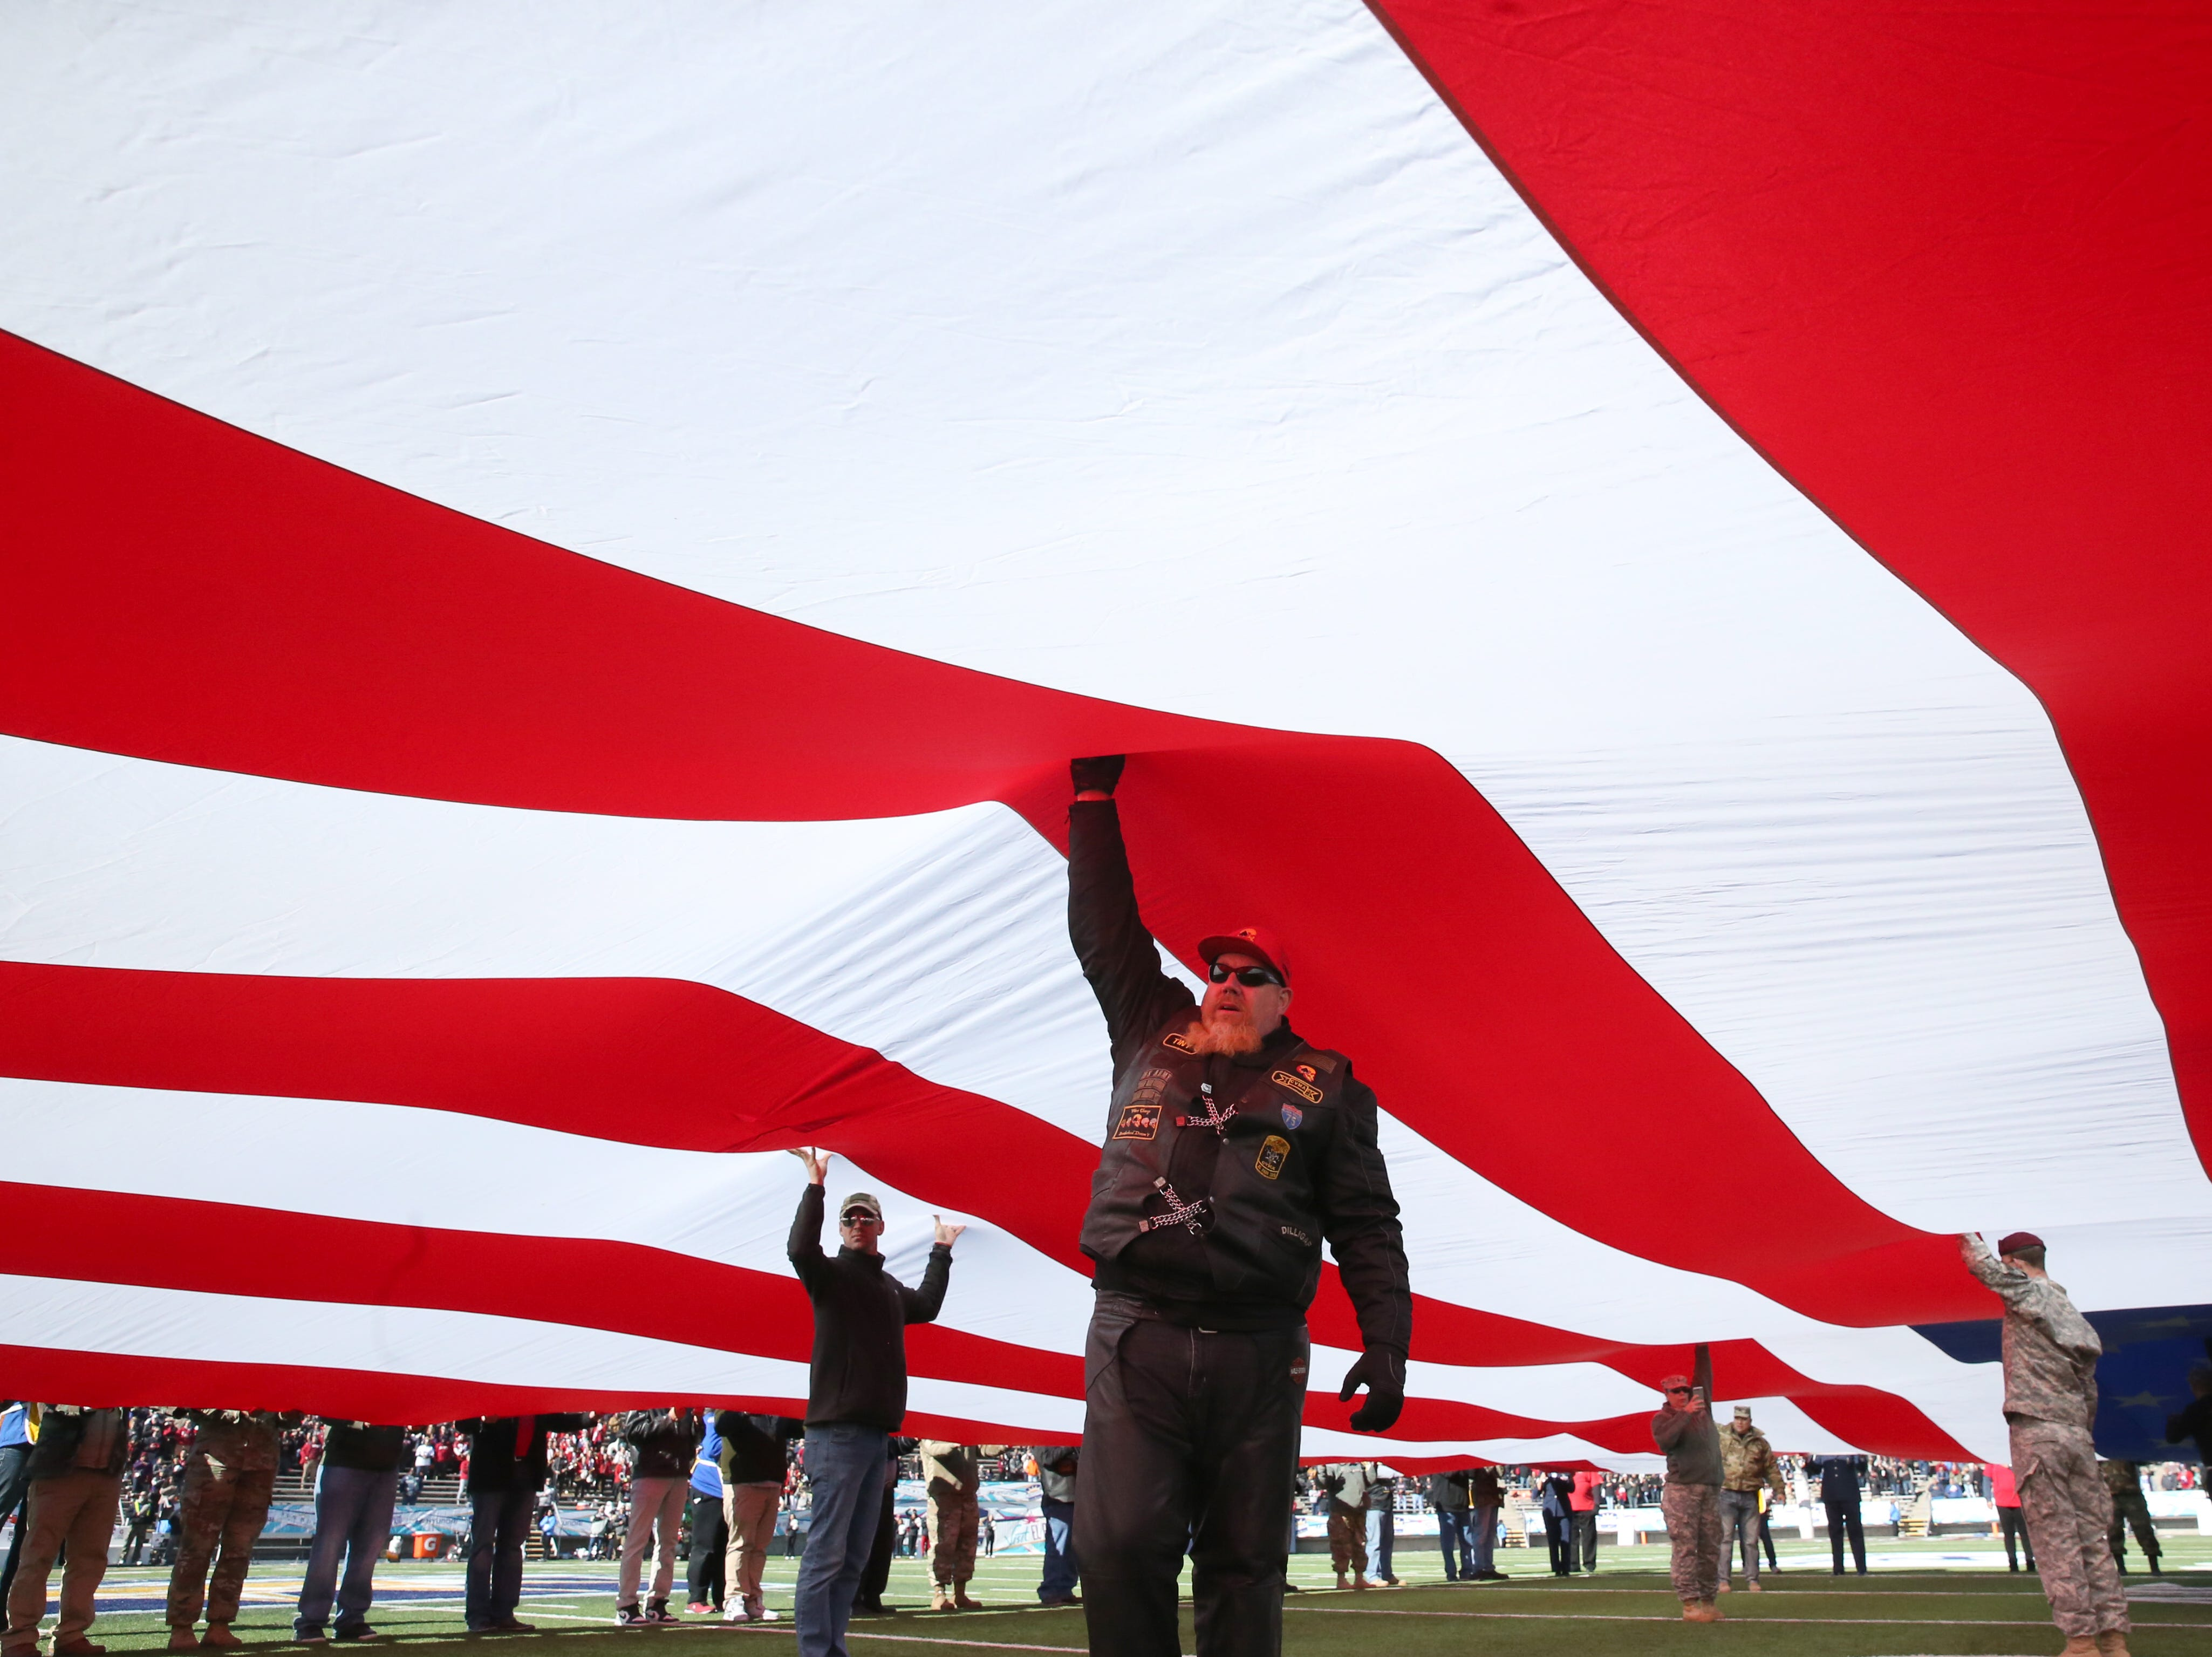 Military veterans hoist a large U.S. flag on the field during the 85th Hyundai Sun Bowl game between the Stanford Cardinal and the Pitt Panthers Monday. The Cardinal won a close game 14-13.